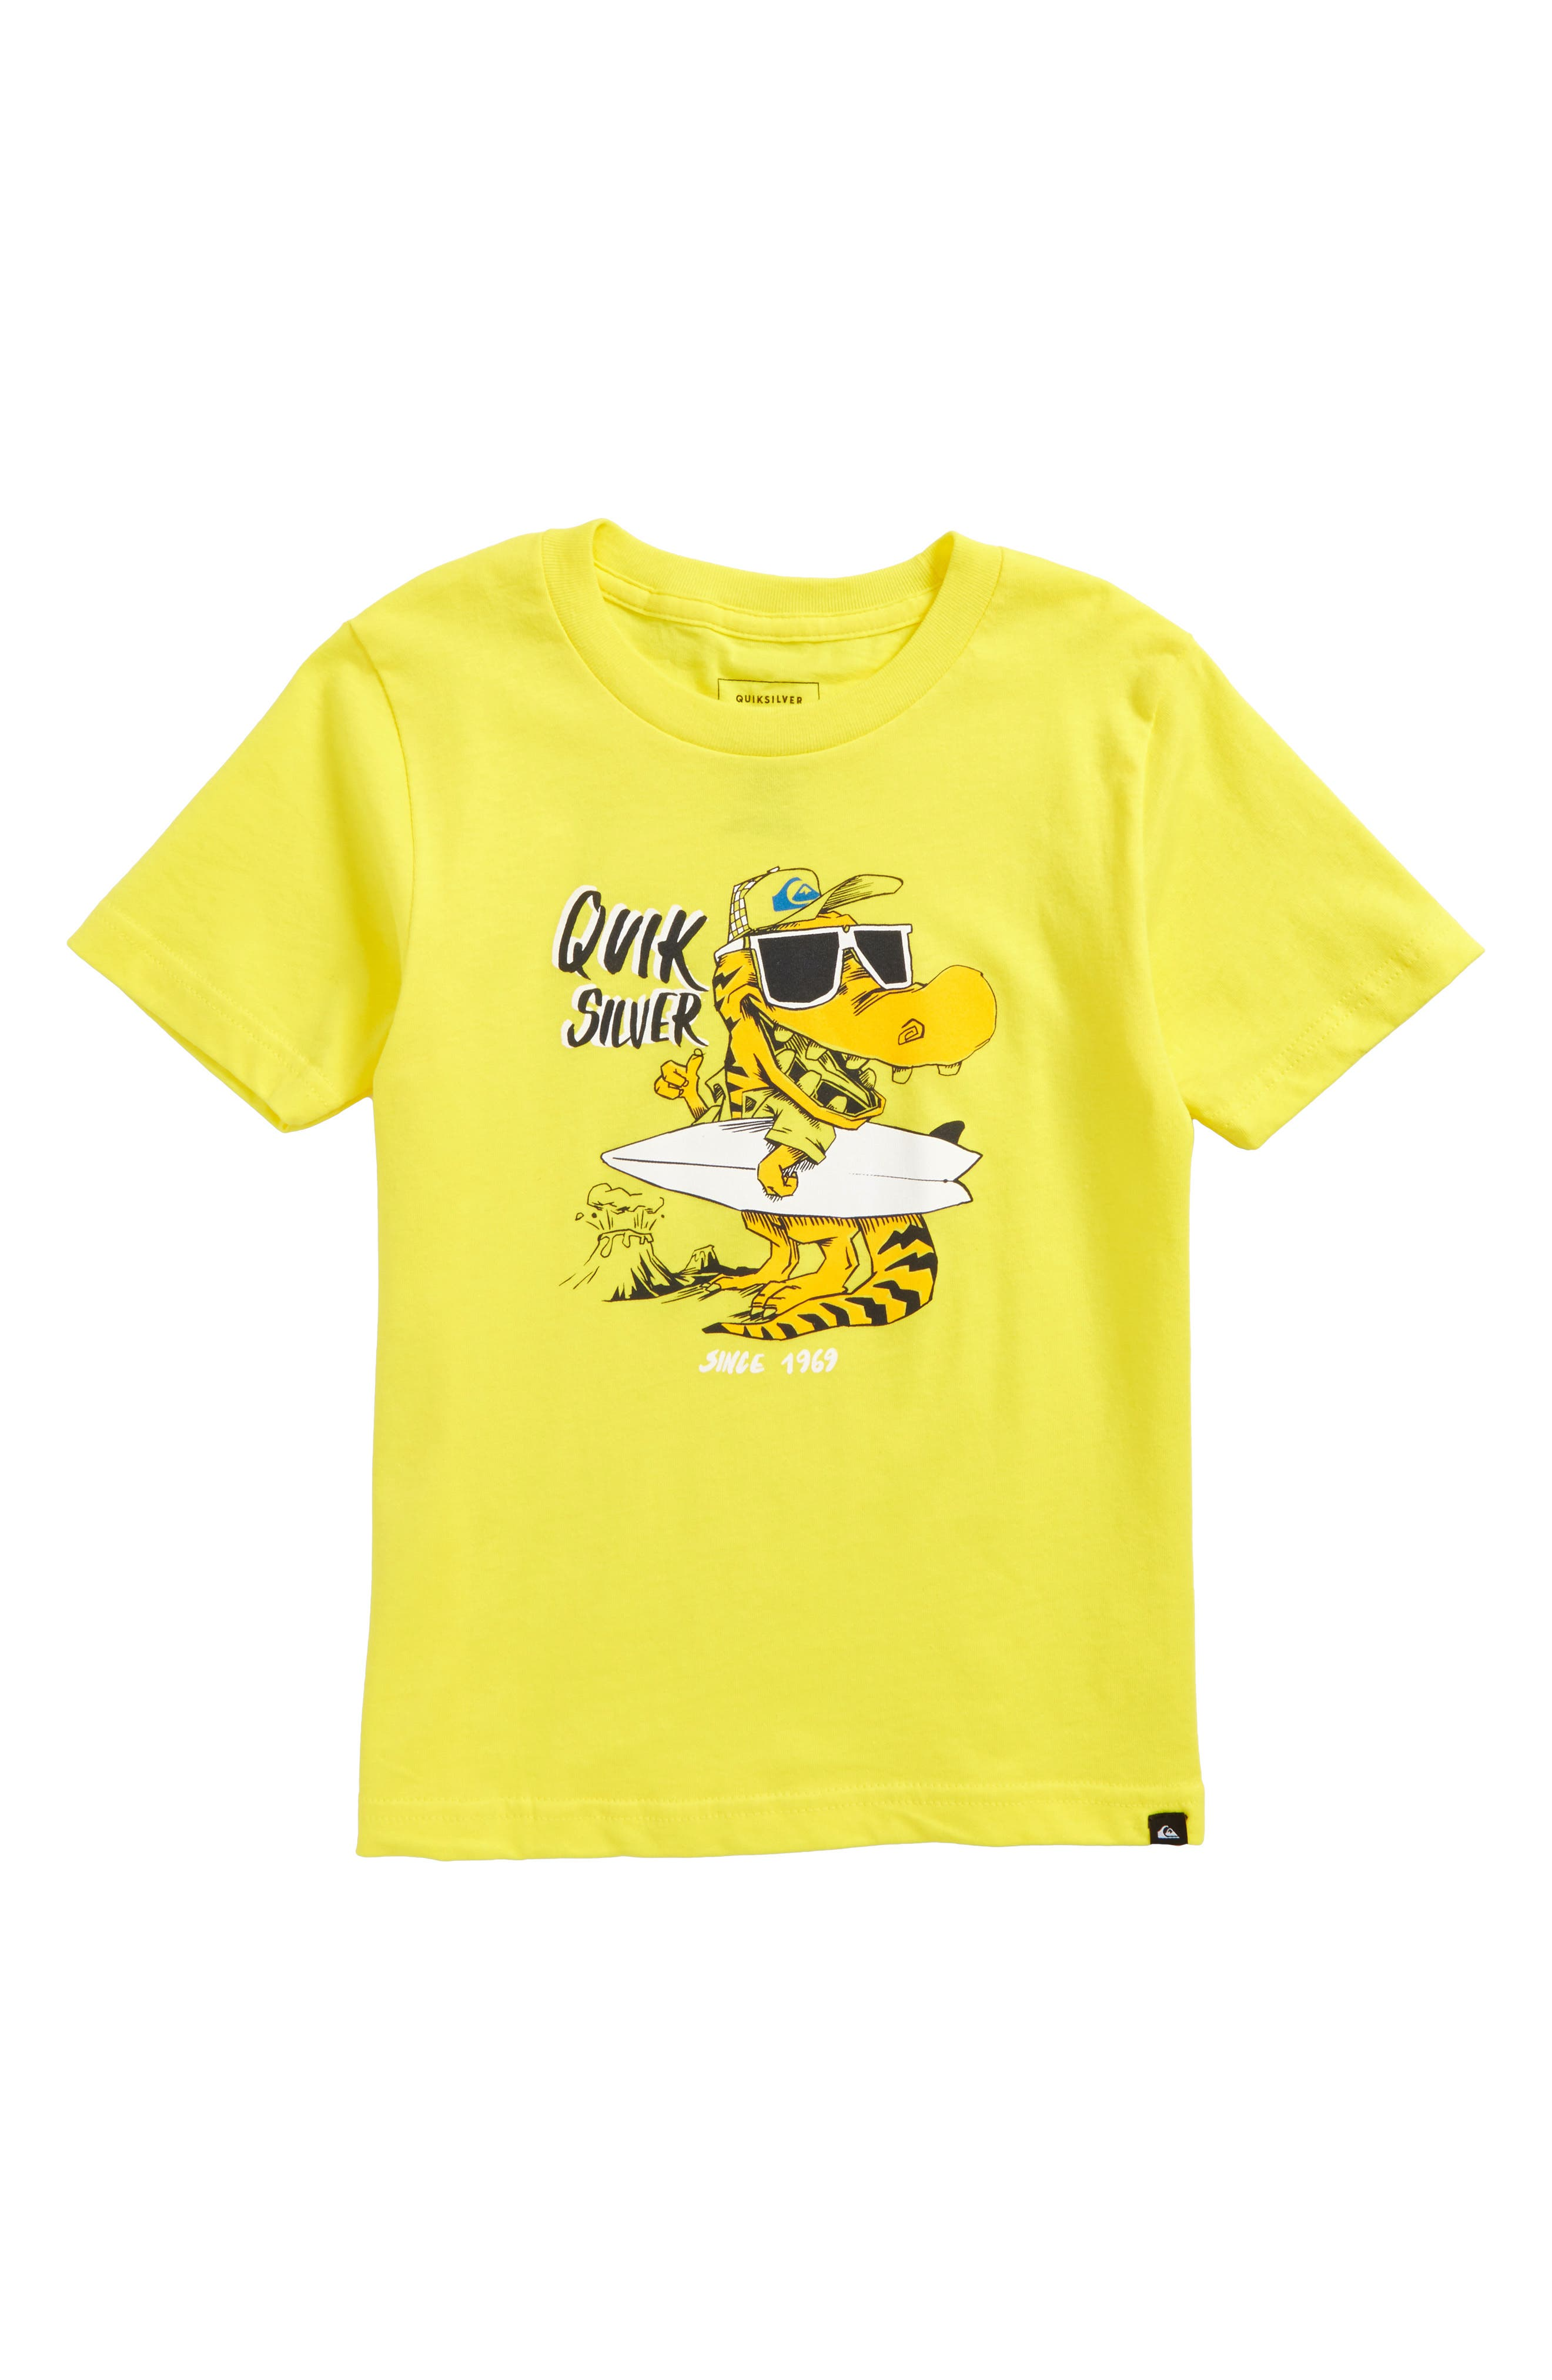 Quiksilver From Old Times Graphic T-Shirt (Toddler Boys & Little Boys)